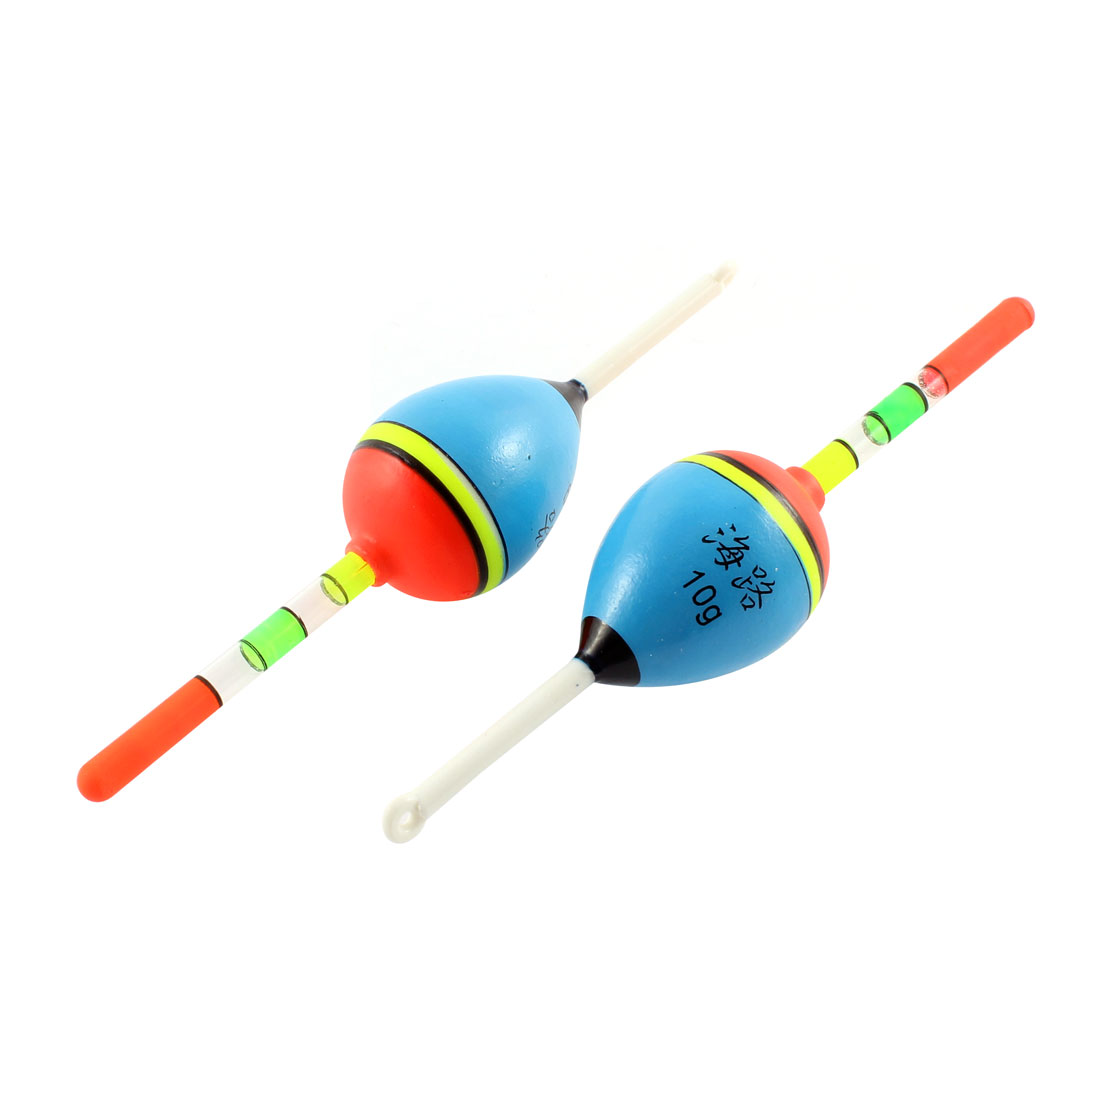 2 Pcs Striped Fishing Float Water Slip Bobber Floater Fish Gear Angling Tool for Fisherman